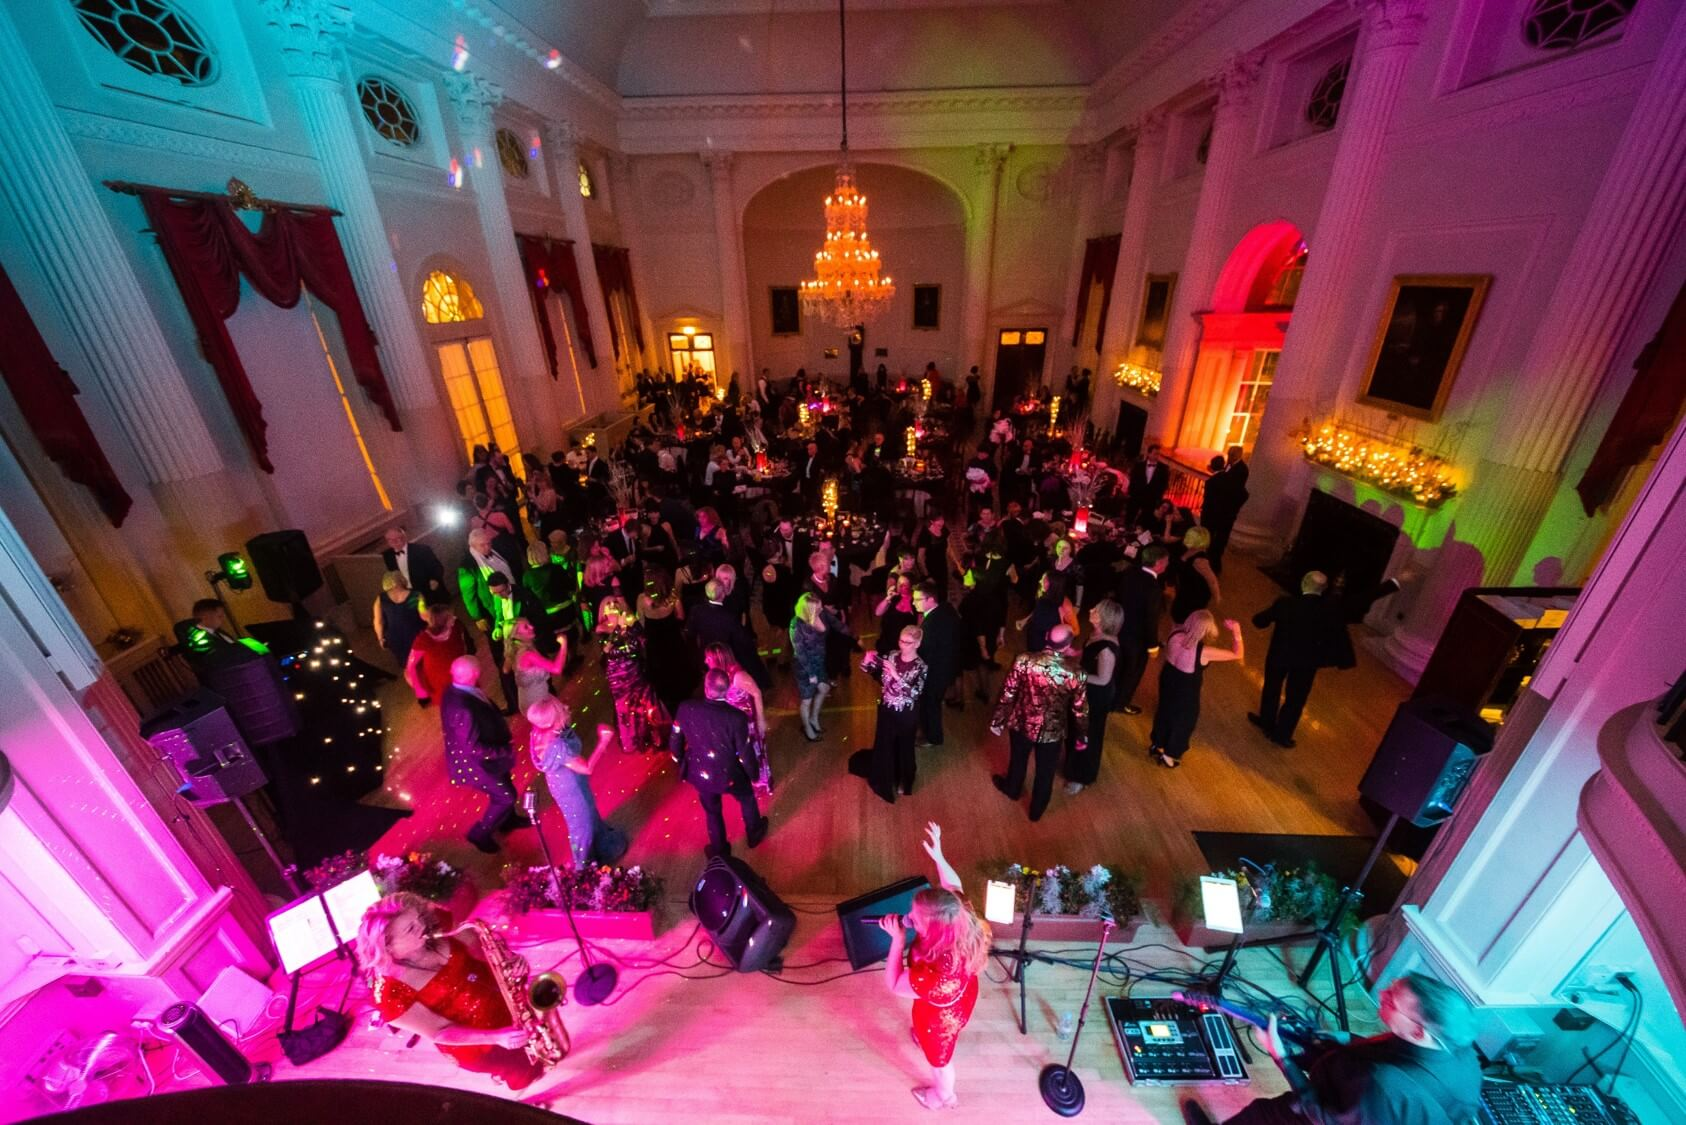 New Year S Eve Ball At The Roman Baths And Pump Room The